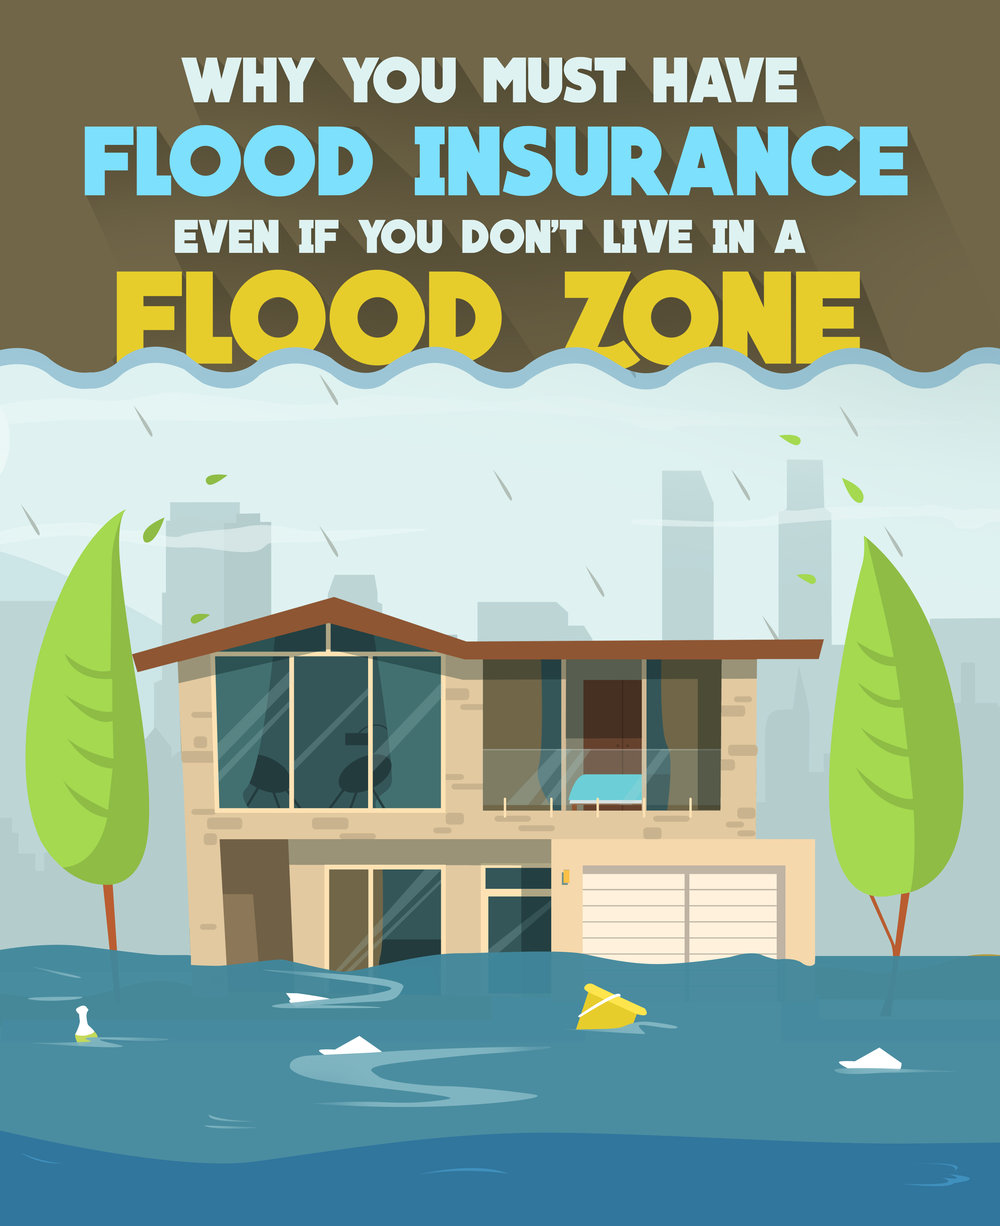 Why You Must Have Flood Insurance Even If You Don't Live In A Flood Zone